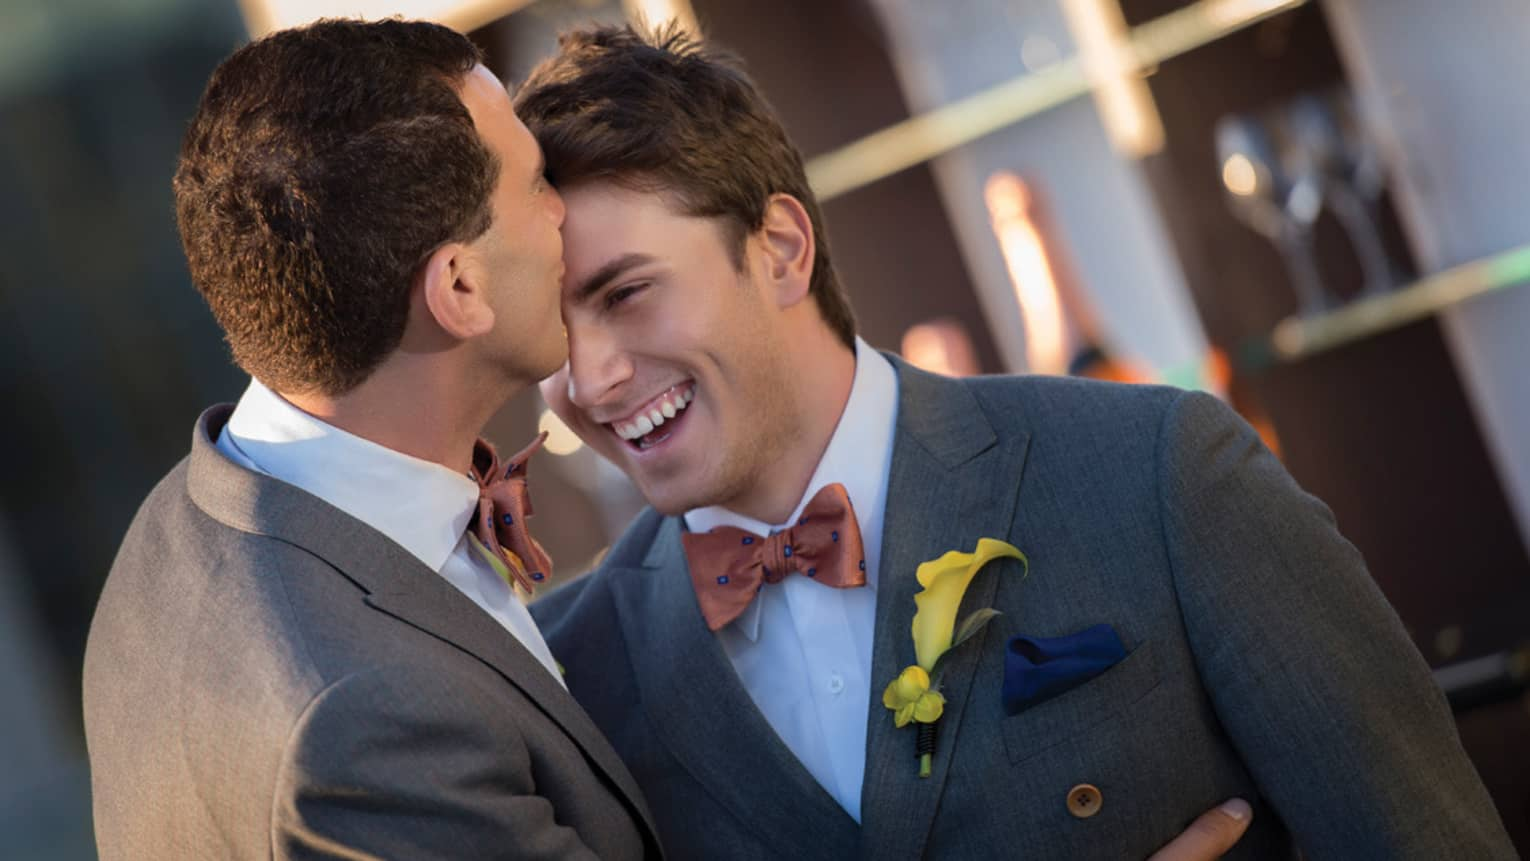 Two grooms wearing matching tuxedos, one kisses the other's forehead